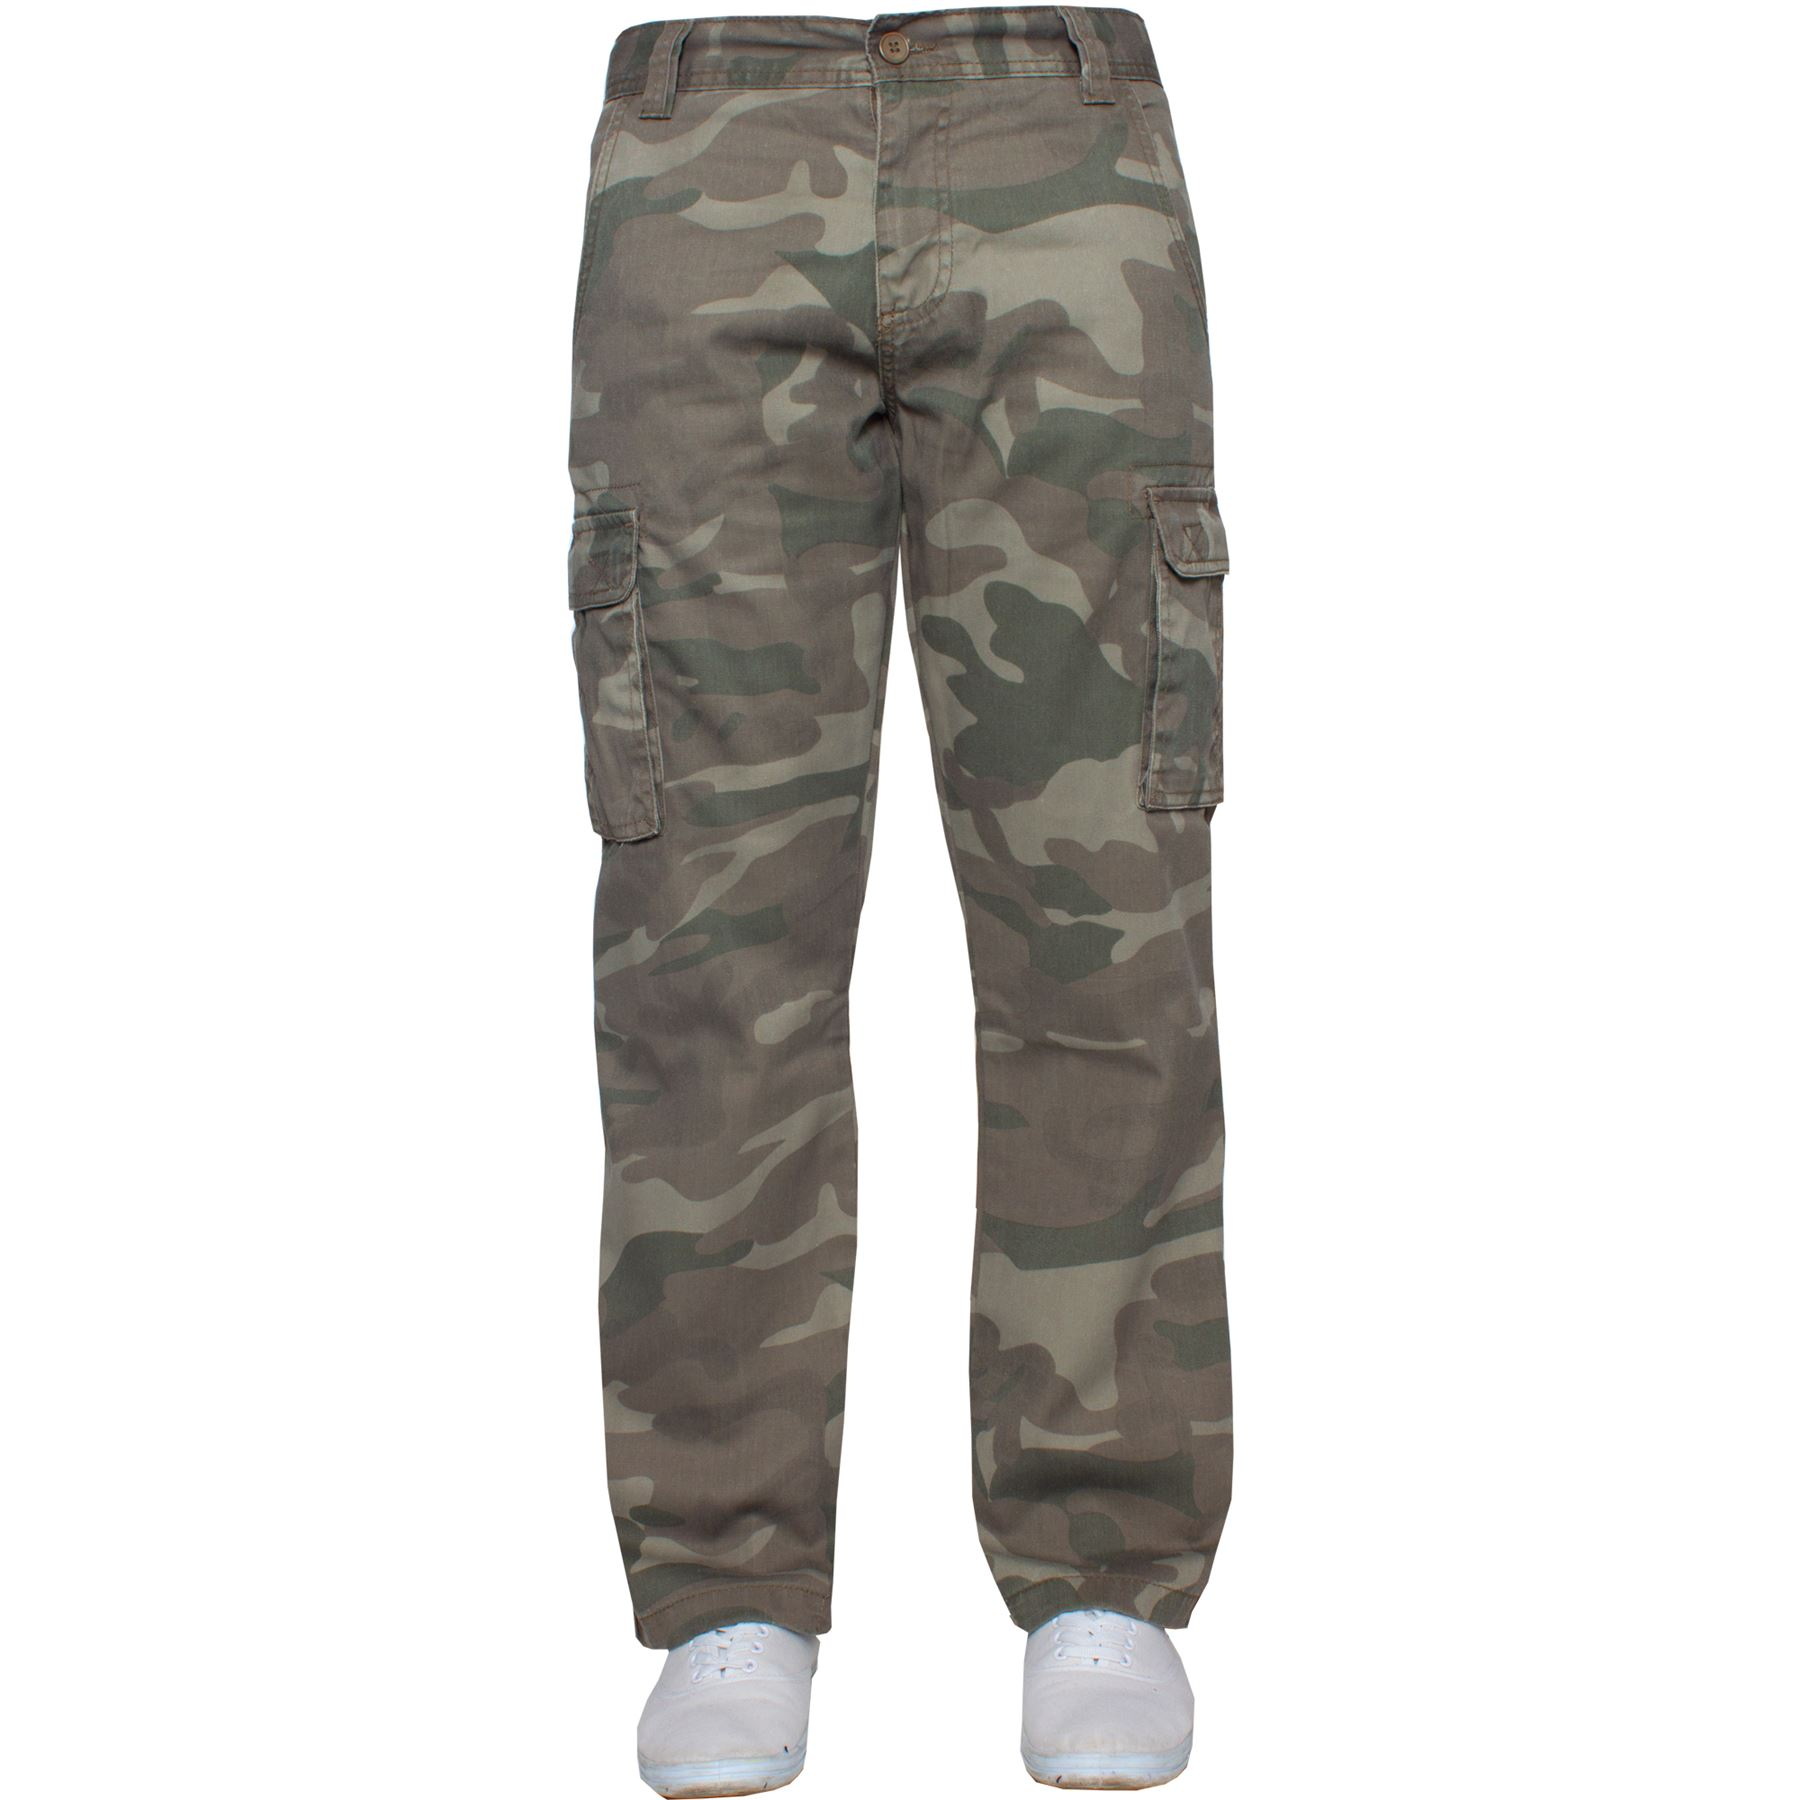 Kruze-Mens-Military-Combat-Trousers-Camouflage-Cargo-Camo-Army-Casual-Work-Pants miniatura 28